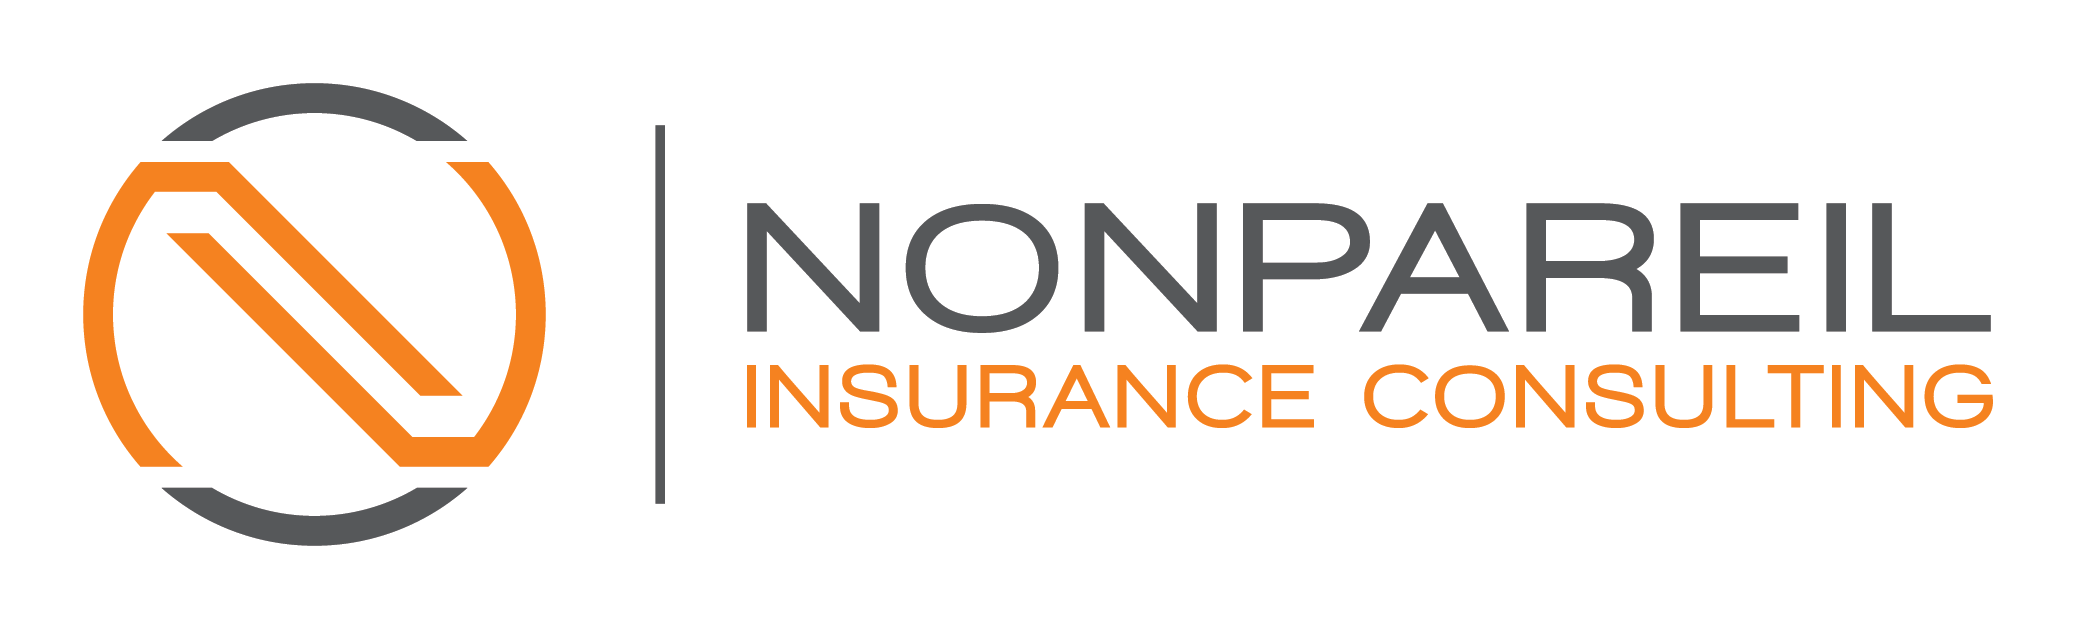 Nonpareil Insurance Consulting